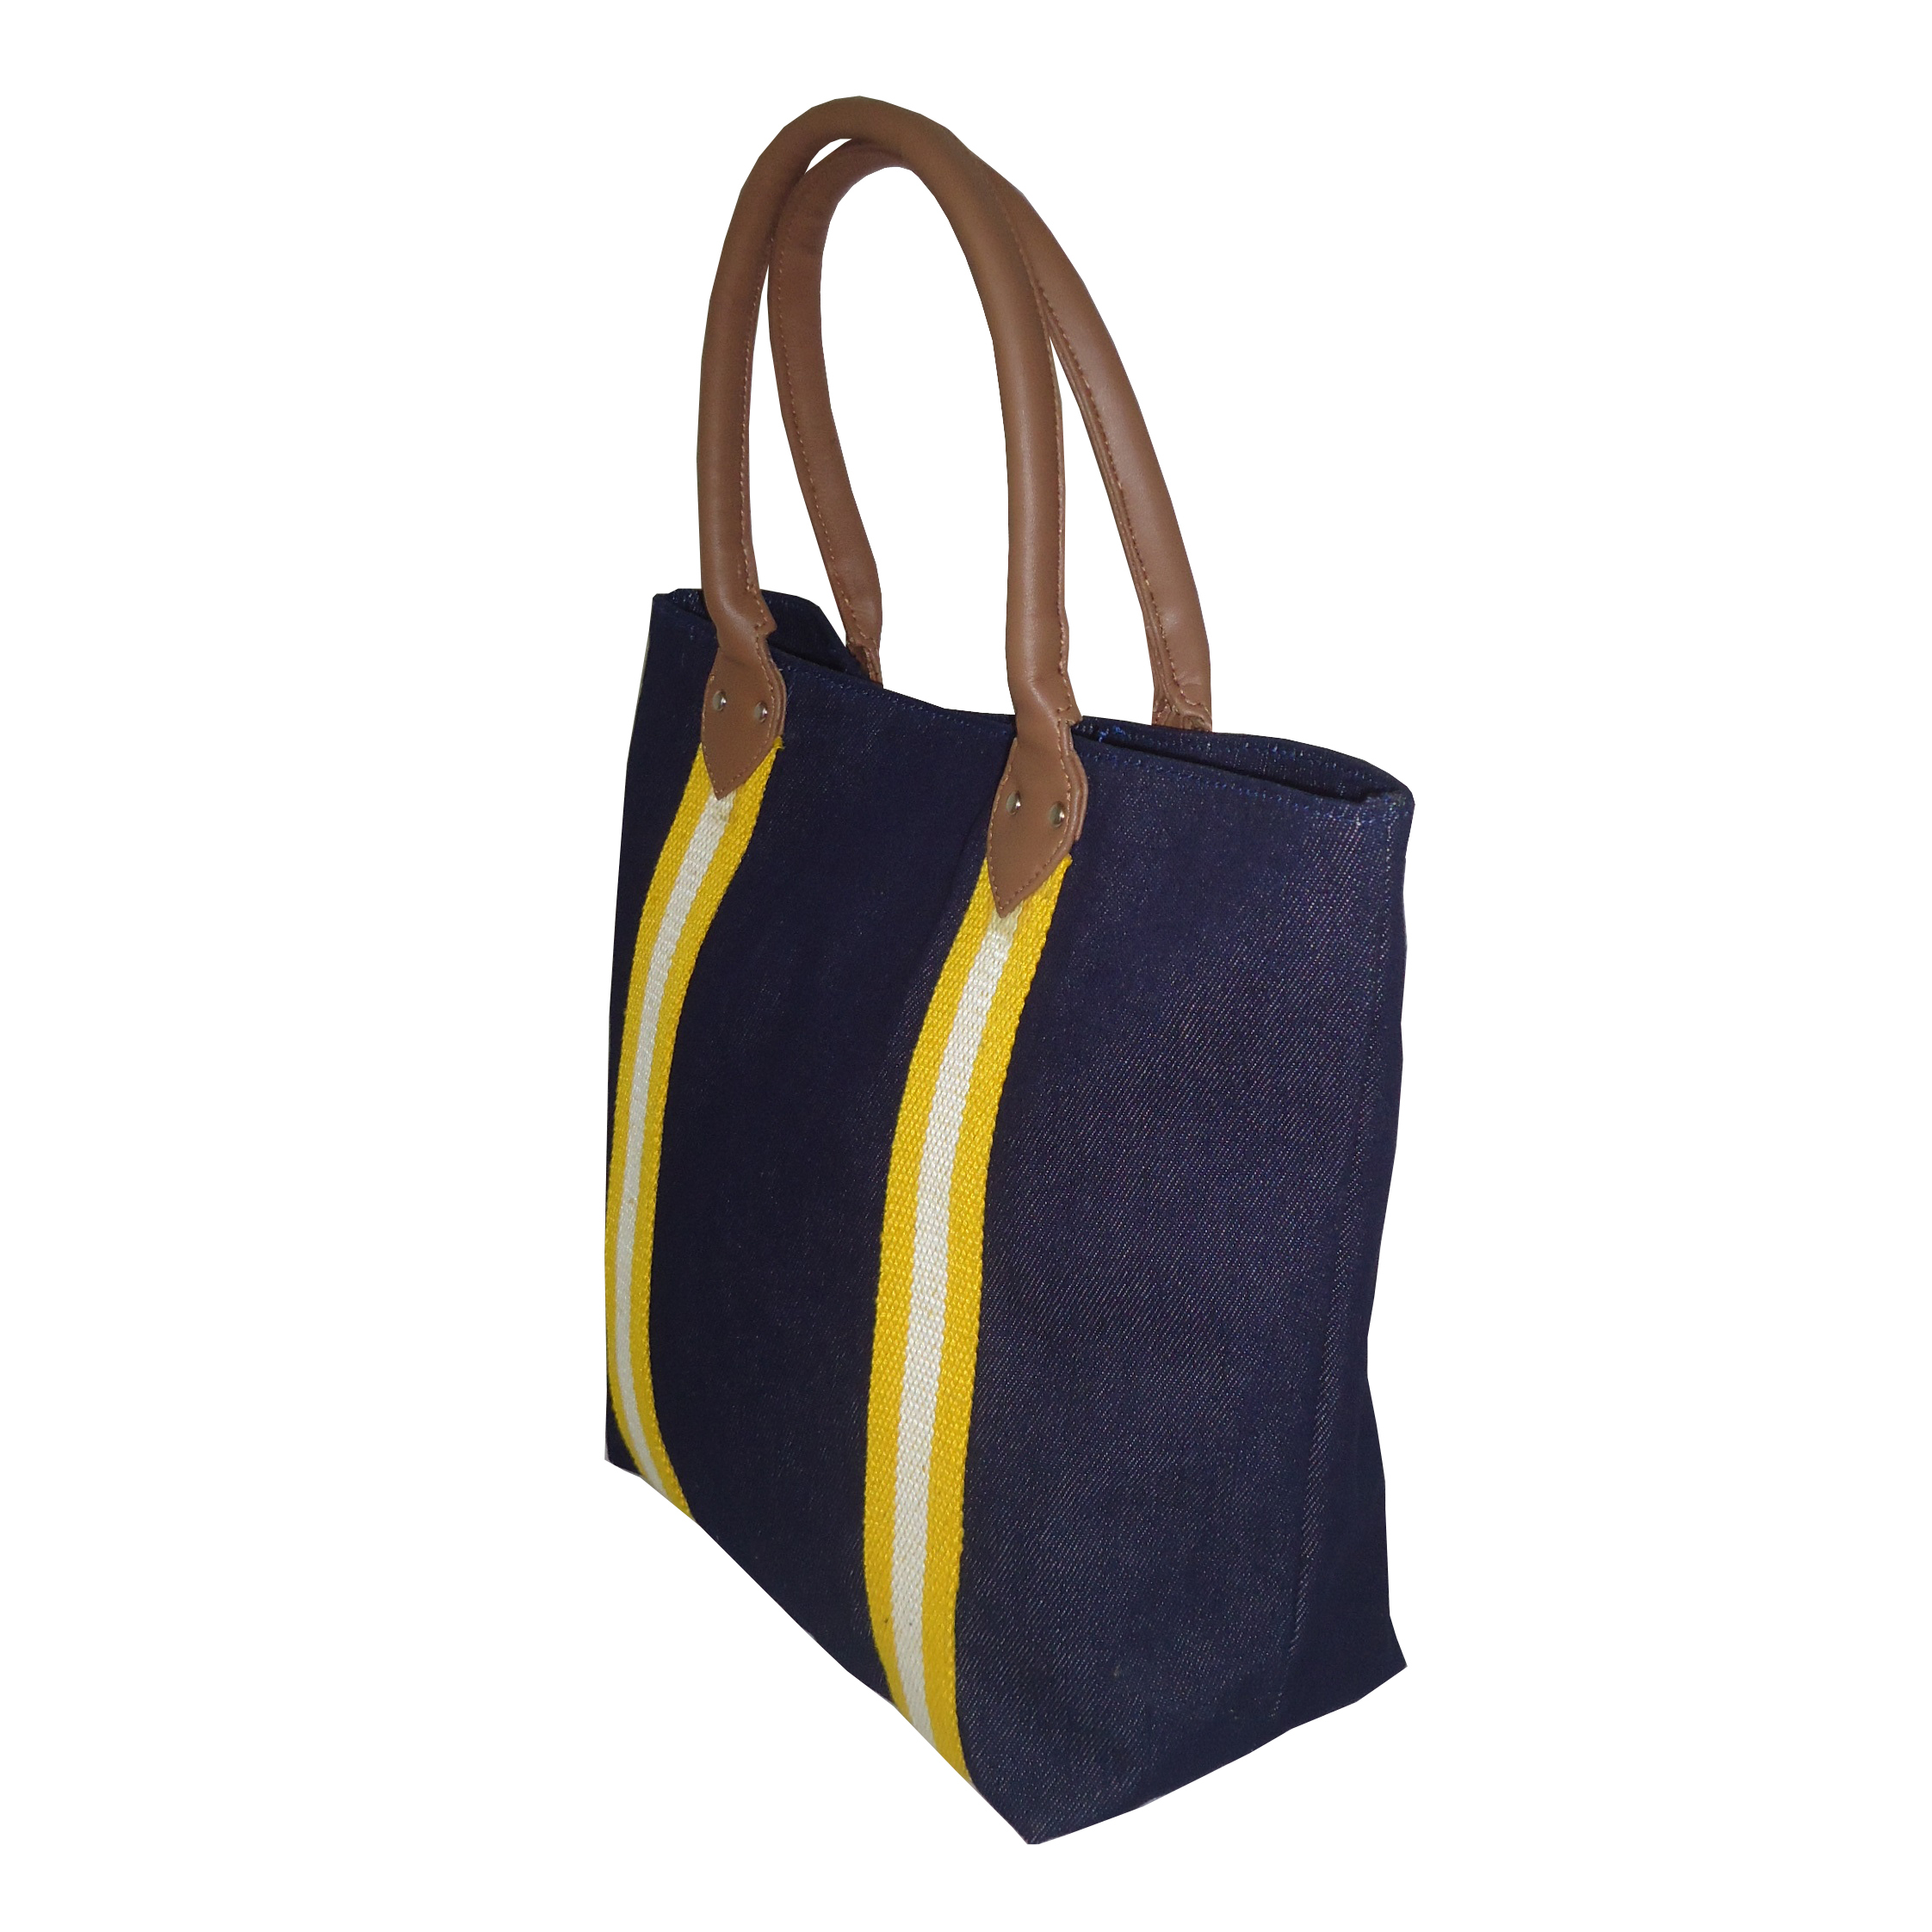 12 Oz Denim Fabric Tote Bag With Inside Polyester Lining